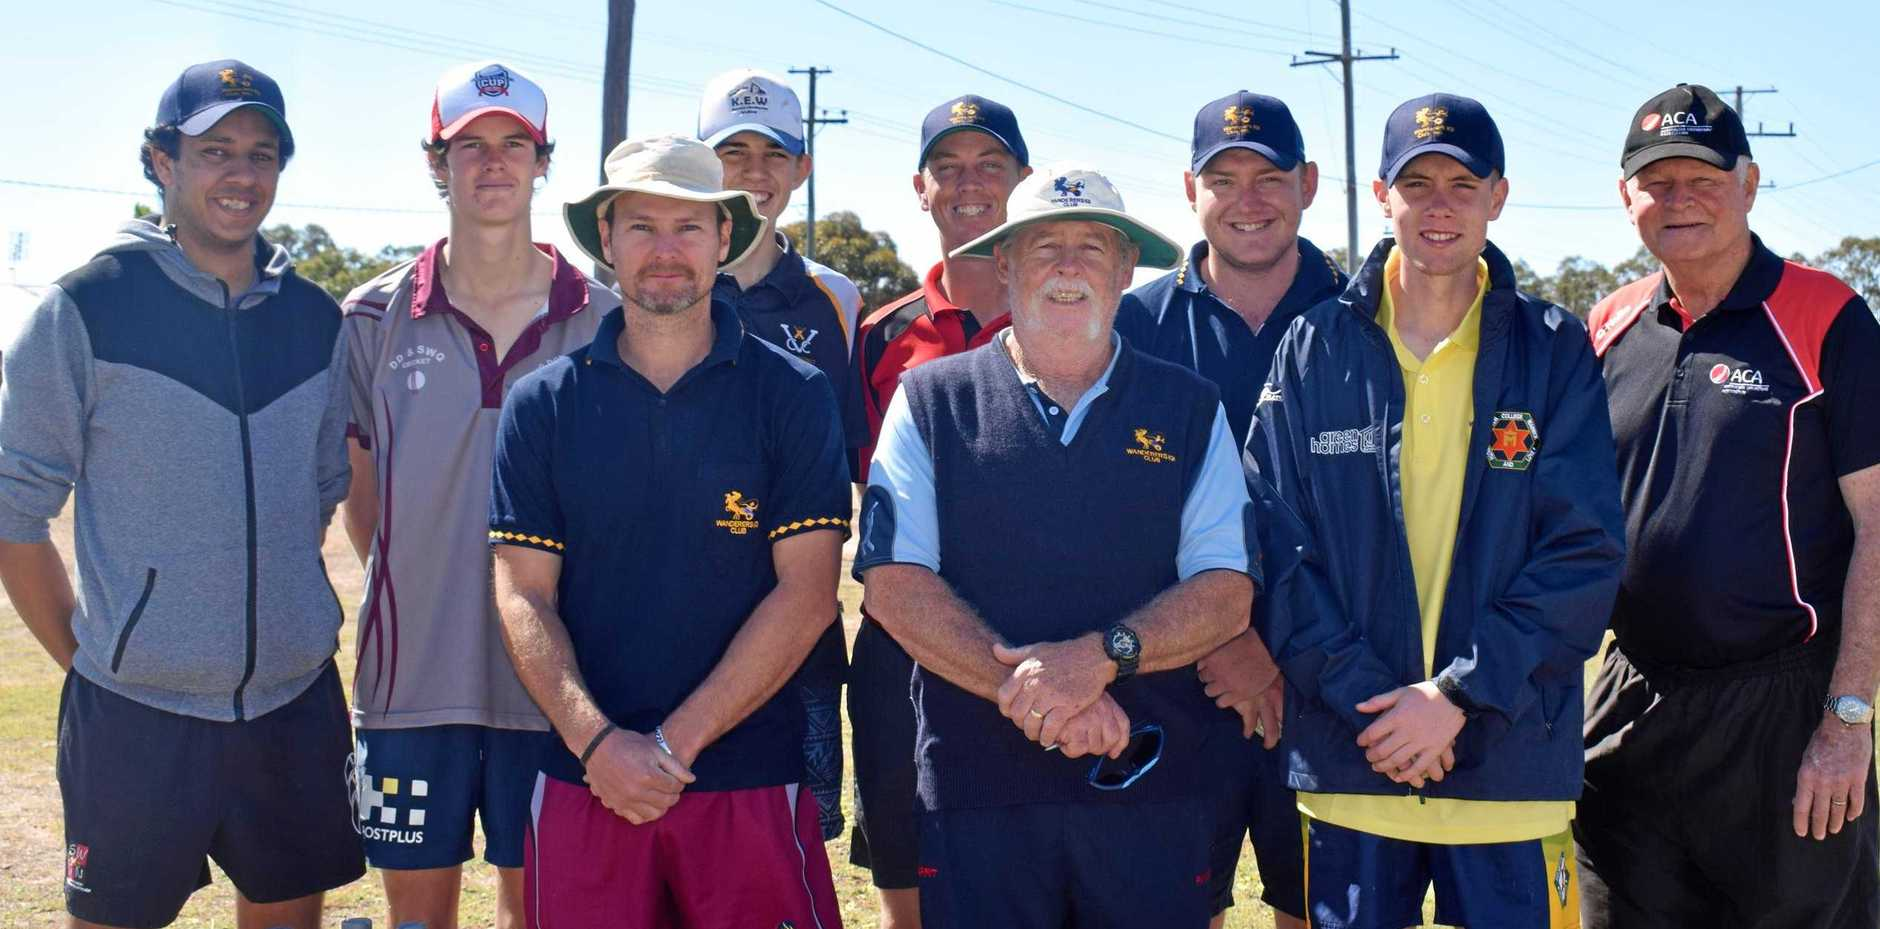 LEARNING FROM THE BEST: The Wanderers with two local Miles cricketers who participanted in their coaching clinic.